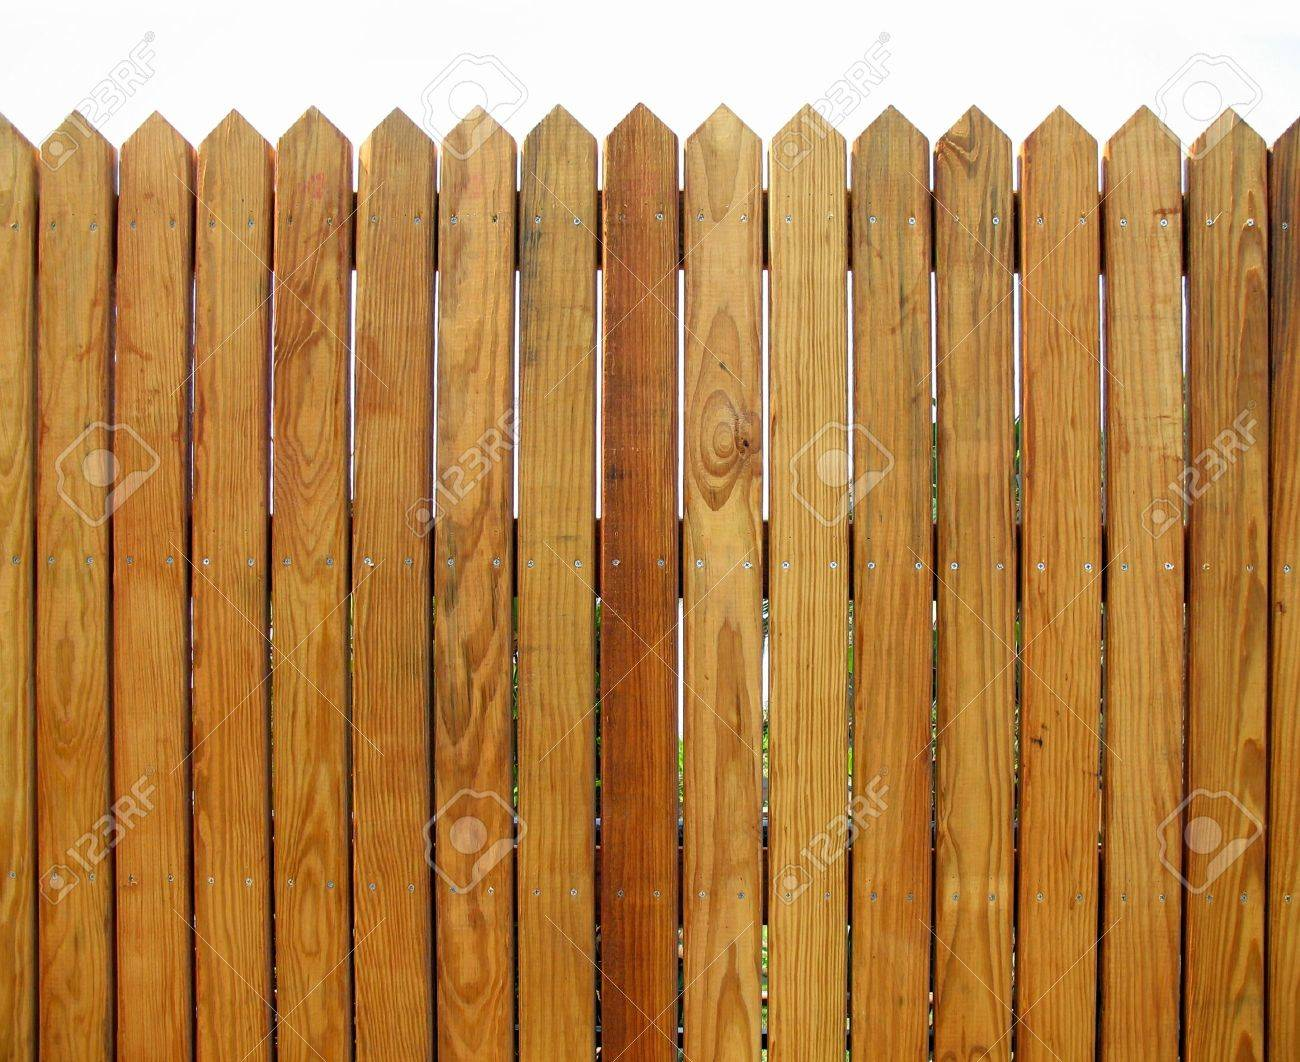 Wooden Fence With Slats That Show The Natural Wood Pattern Stock Photo Picture And Royalty Free Image Image 3219580